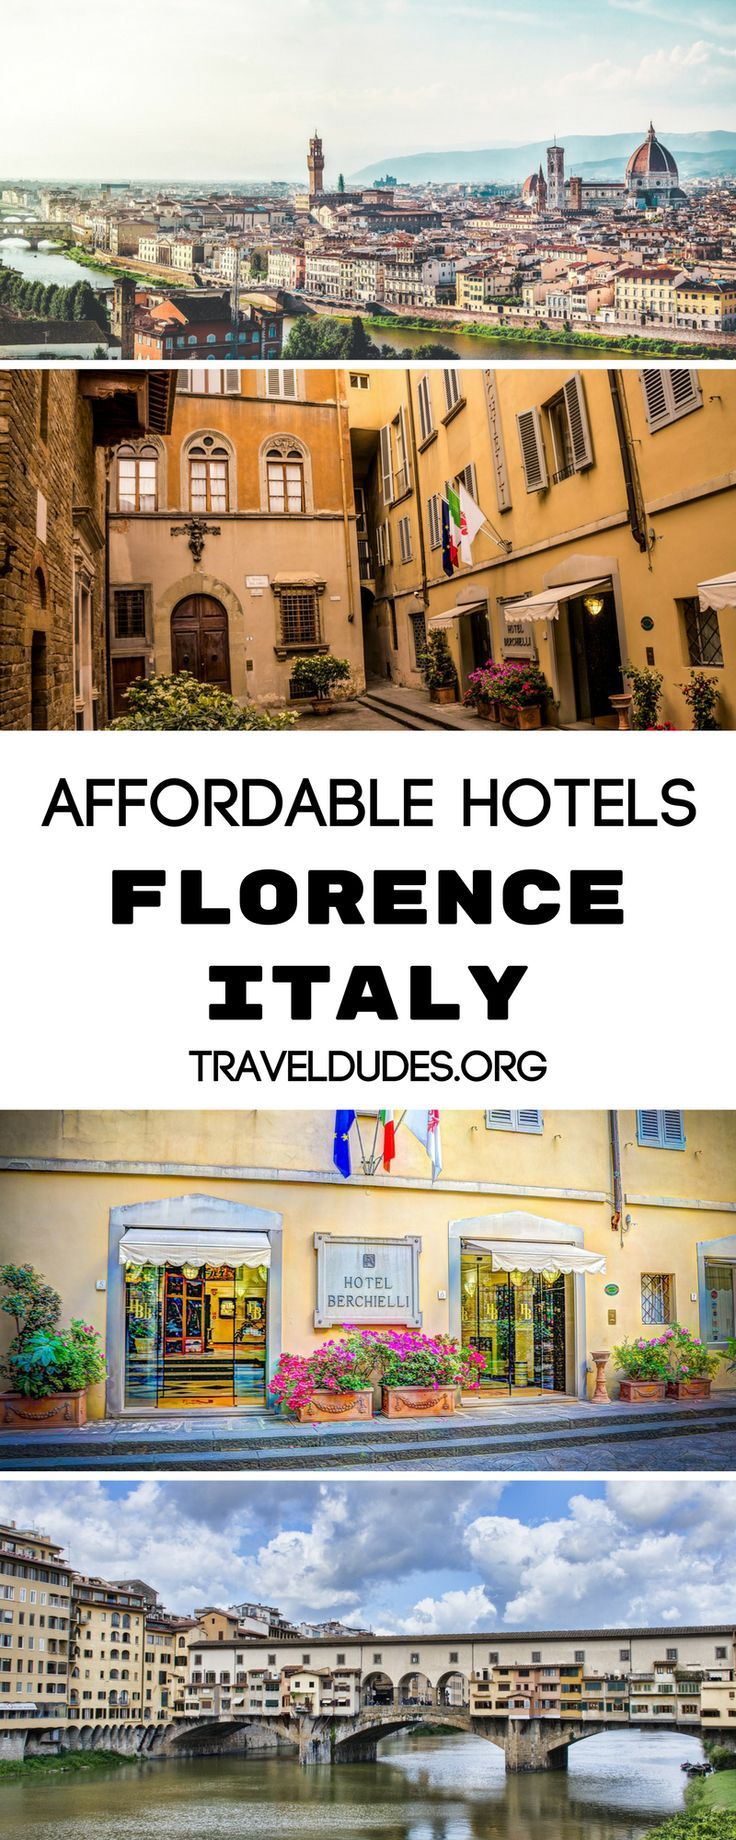 A guide to the best affordable hotels in Florence, Italy. Centrally located and close to all of the best things to do in the city, these hotels tick all the boxes. They are affordable, but still chic, close to restaurants and other must-see sites. Travel in Europe. | Travel Dudes Travel Community #Florence #Italy